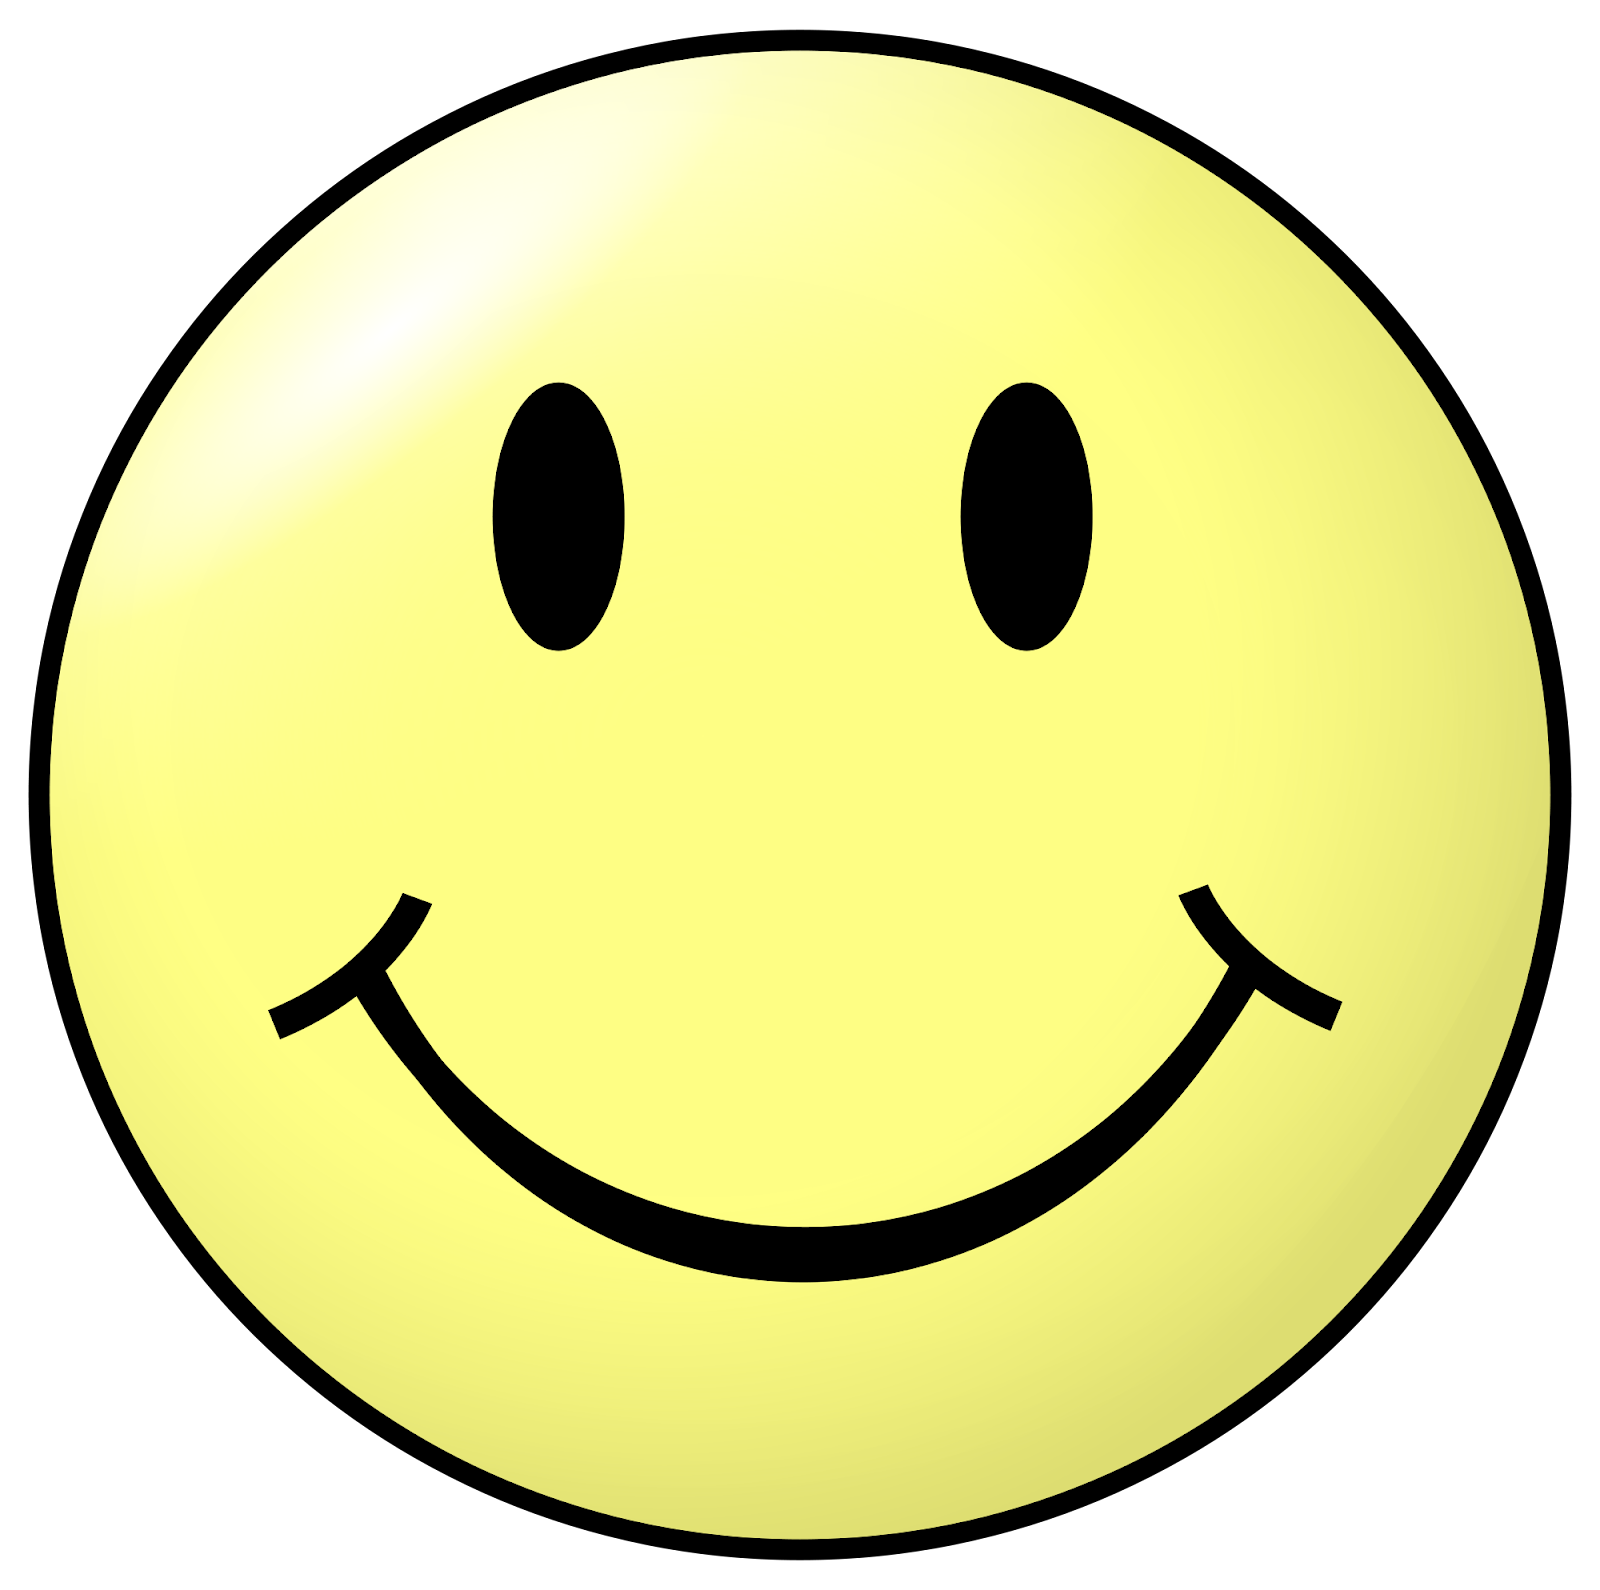 File:Smiley head happy.svg - Wikimedia Commons